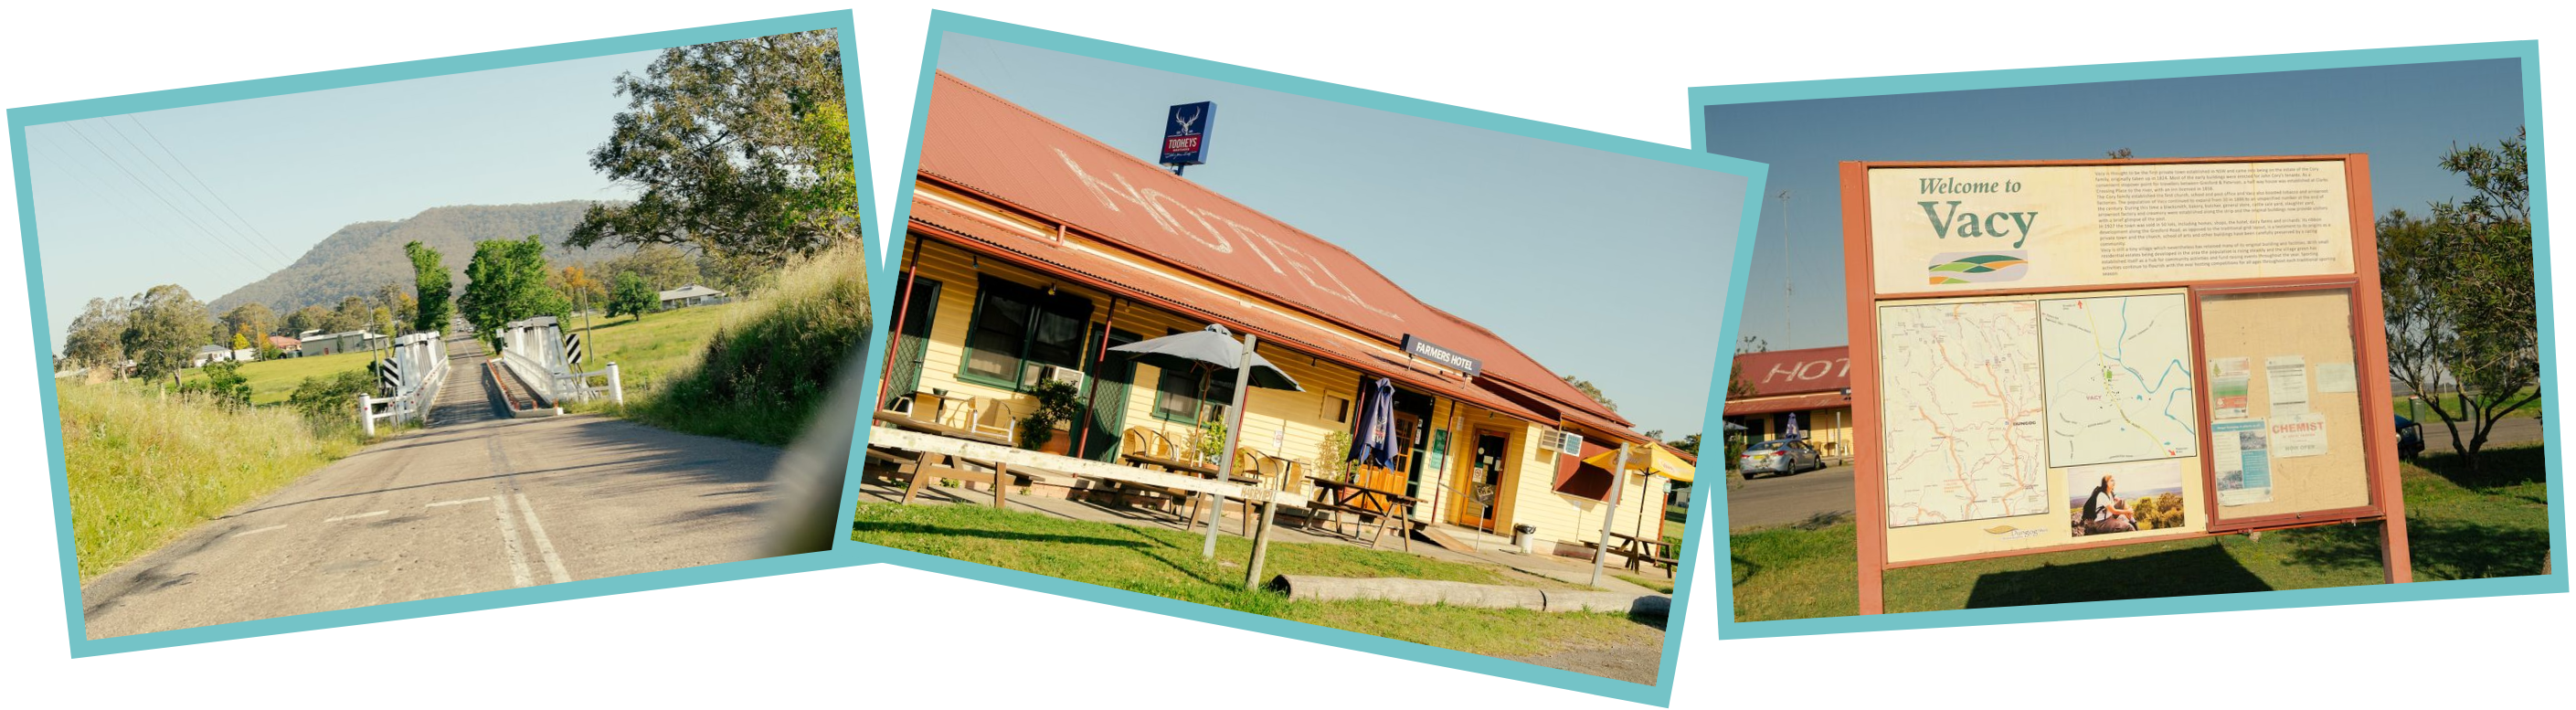 Experience Vacy - Dungog Visitor Centre